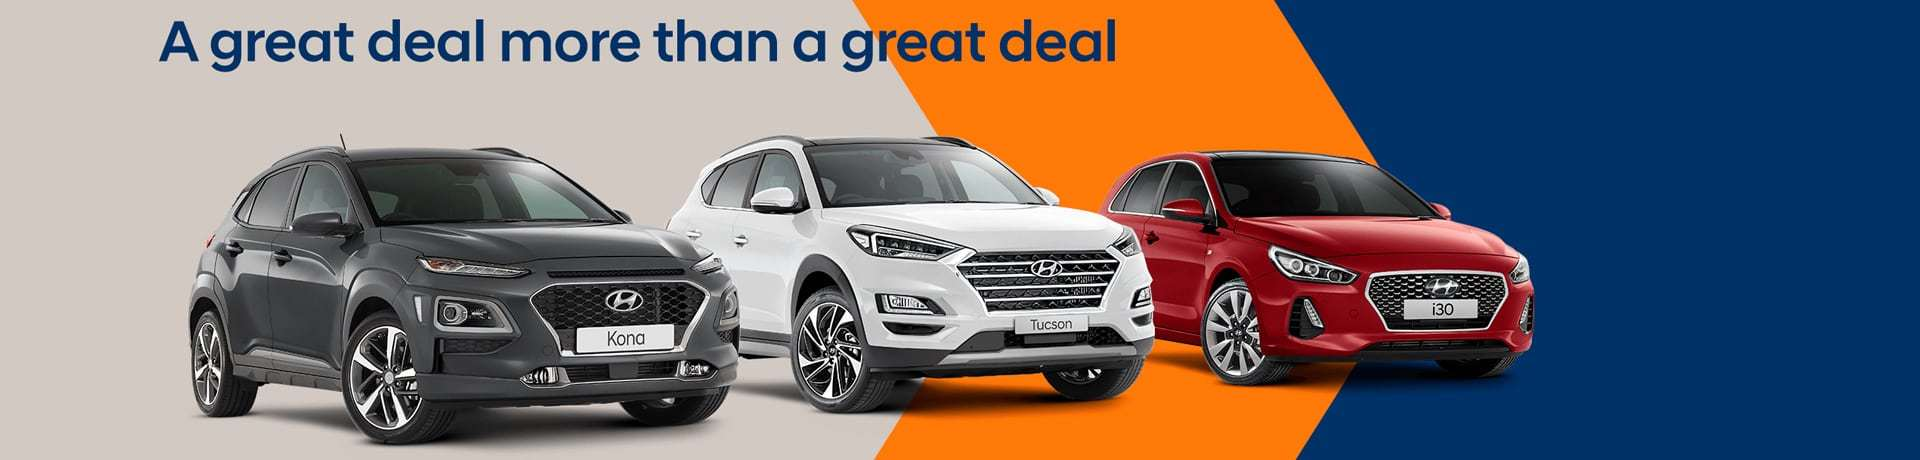 Explore Hyundai's latest offers